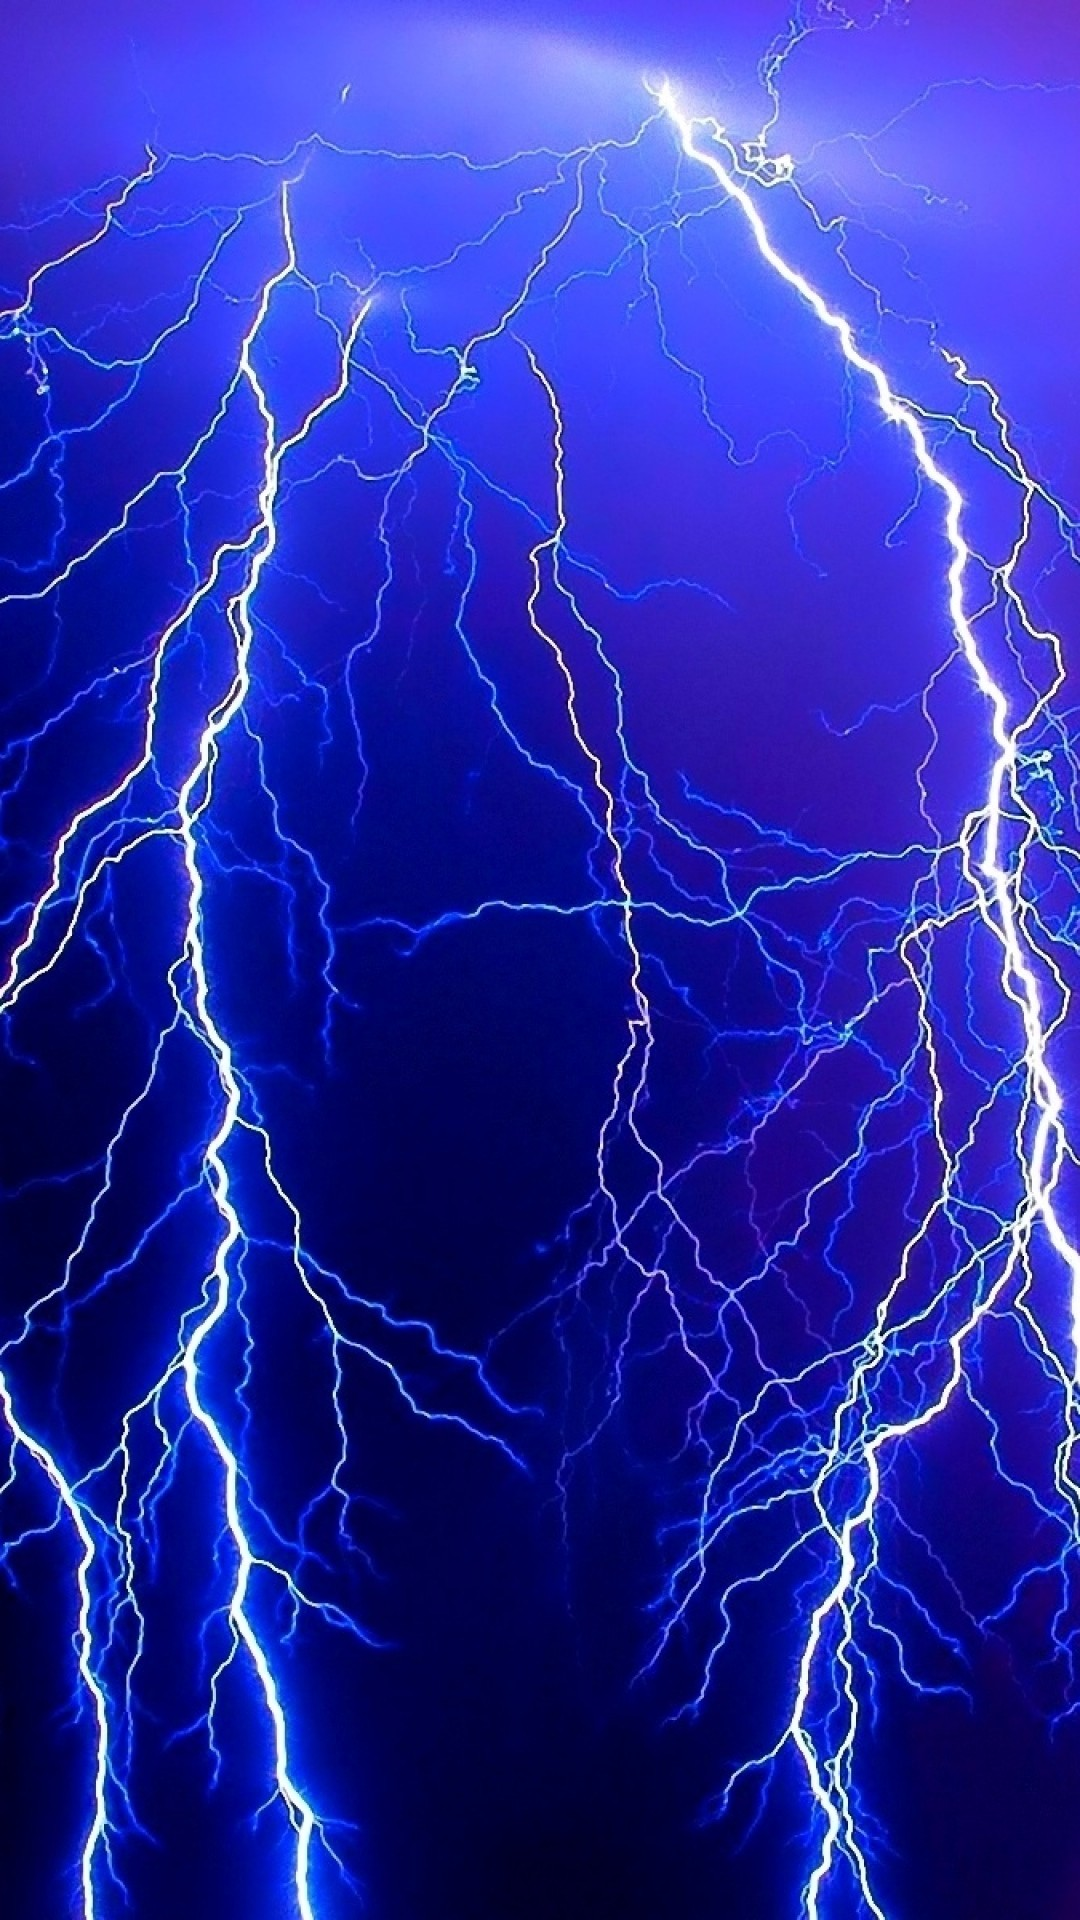 Lightning wallpaper ·① Download free High Resolution ...